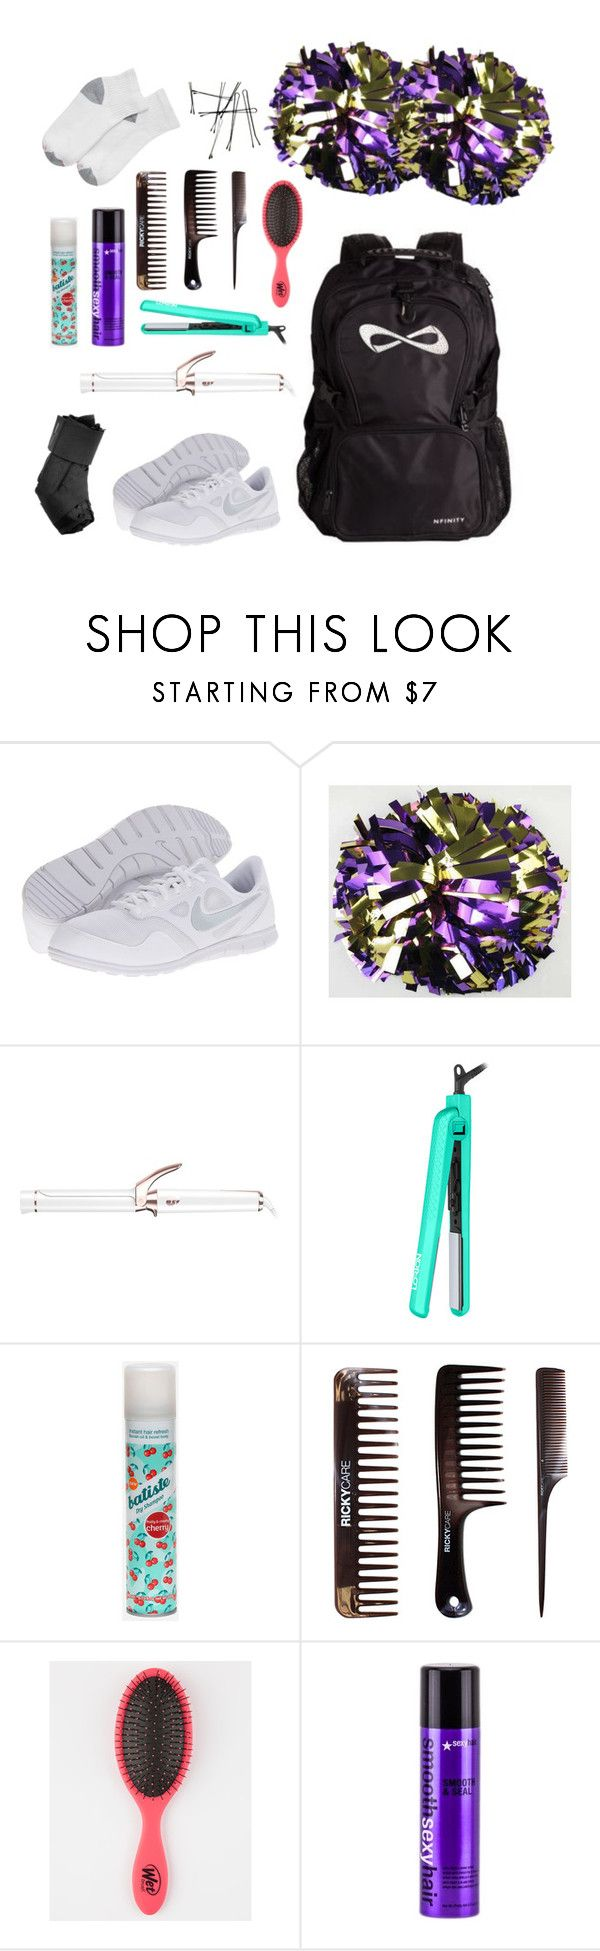 """what's in my cheer bag on game day!"" by libster4404 ❤ liked on Polyvore featuring NIKE, T3, Lorion, Batiste, Sexy Hair and Hanes"